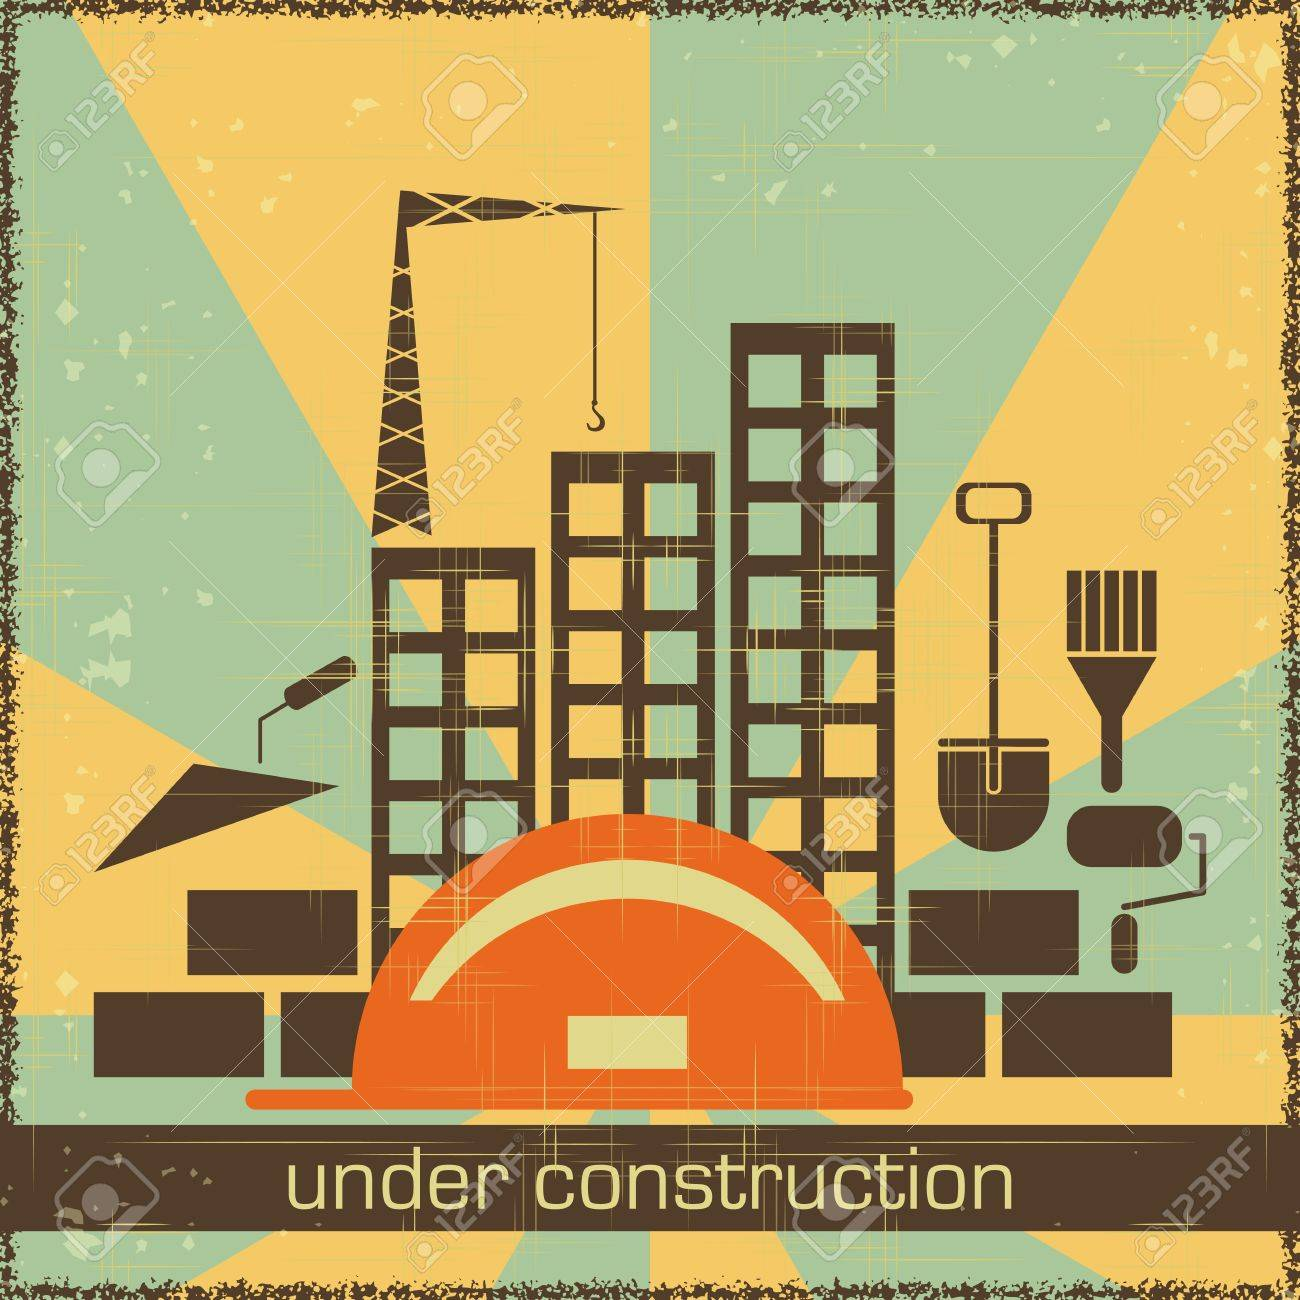 Retro Poster of Under Construction - building icons on grunge background - vector illustration Stock Vector - 13572465